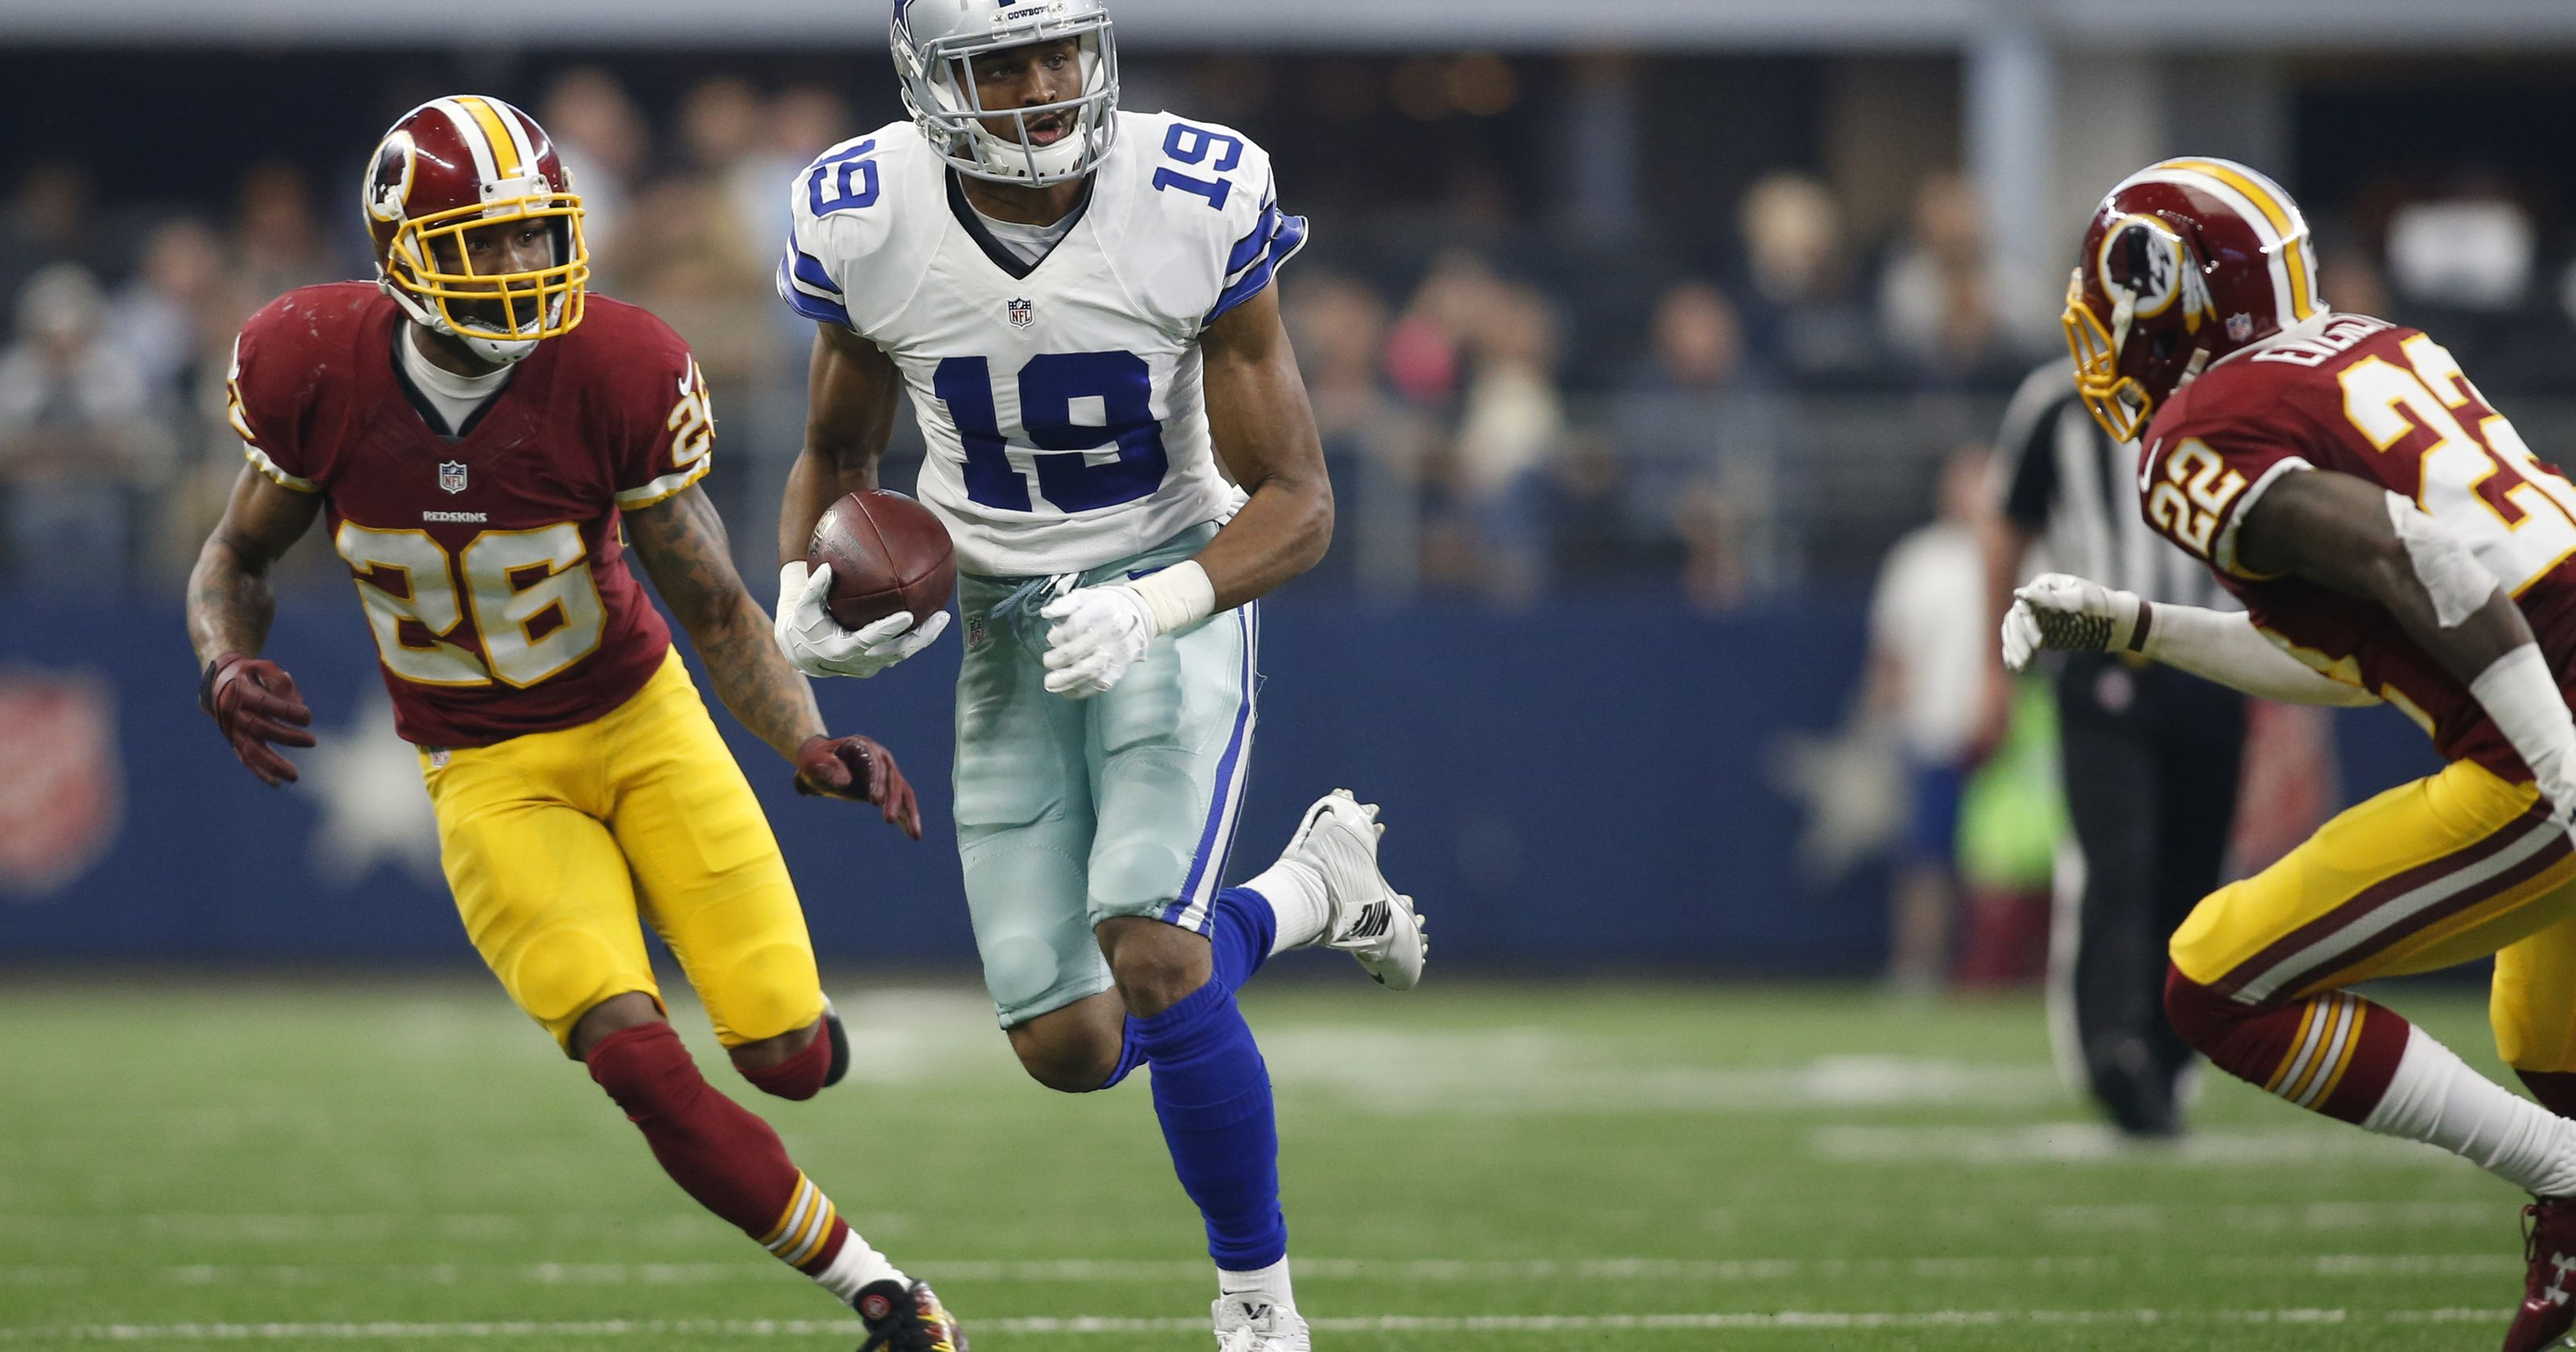 Cowboys Headlines - Which Cowboy Are You Most Excited To See In 2016?